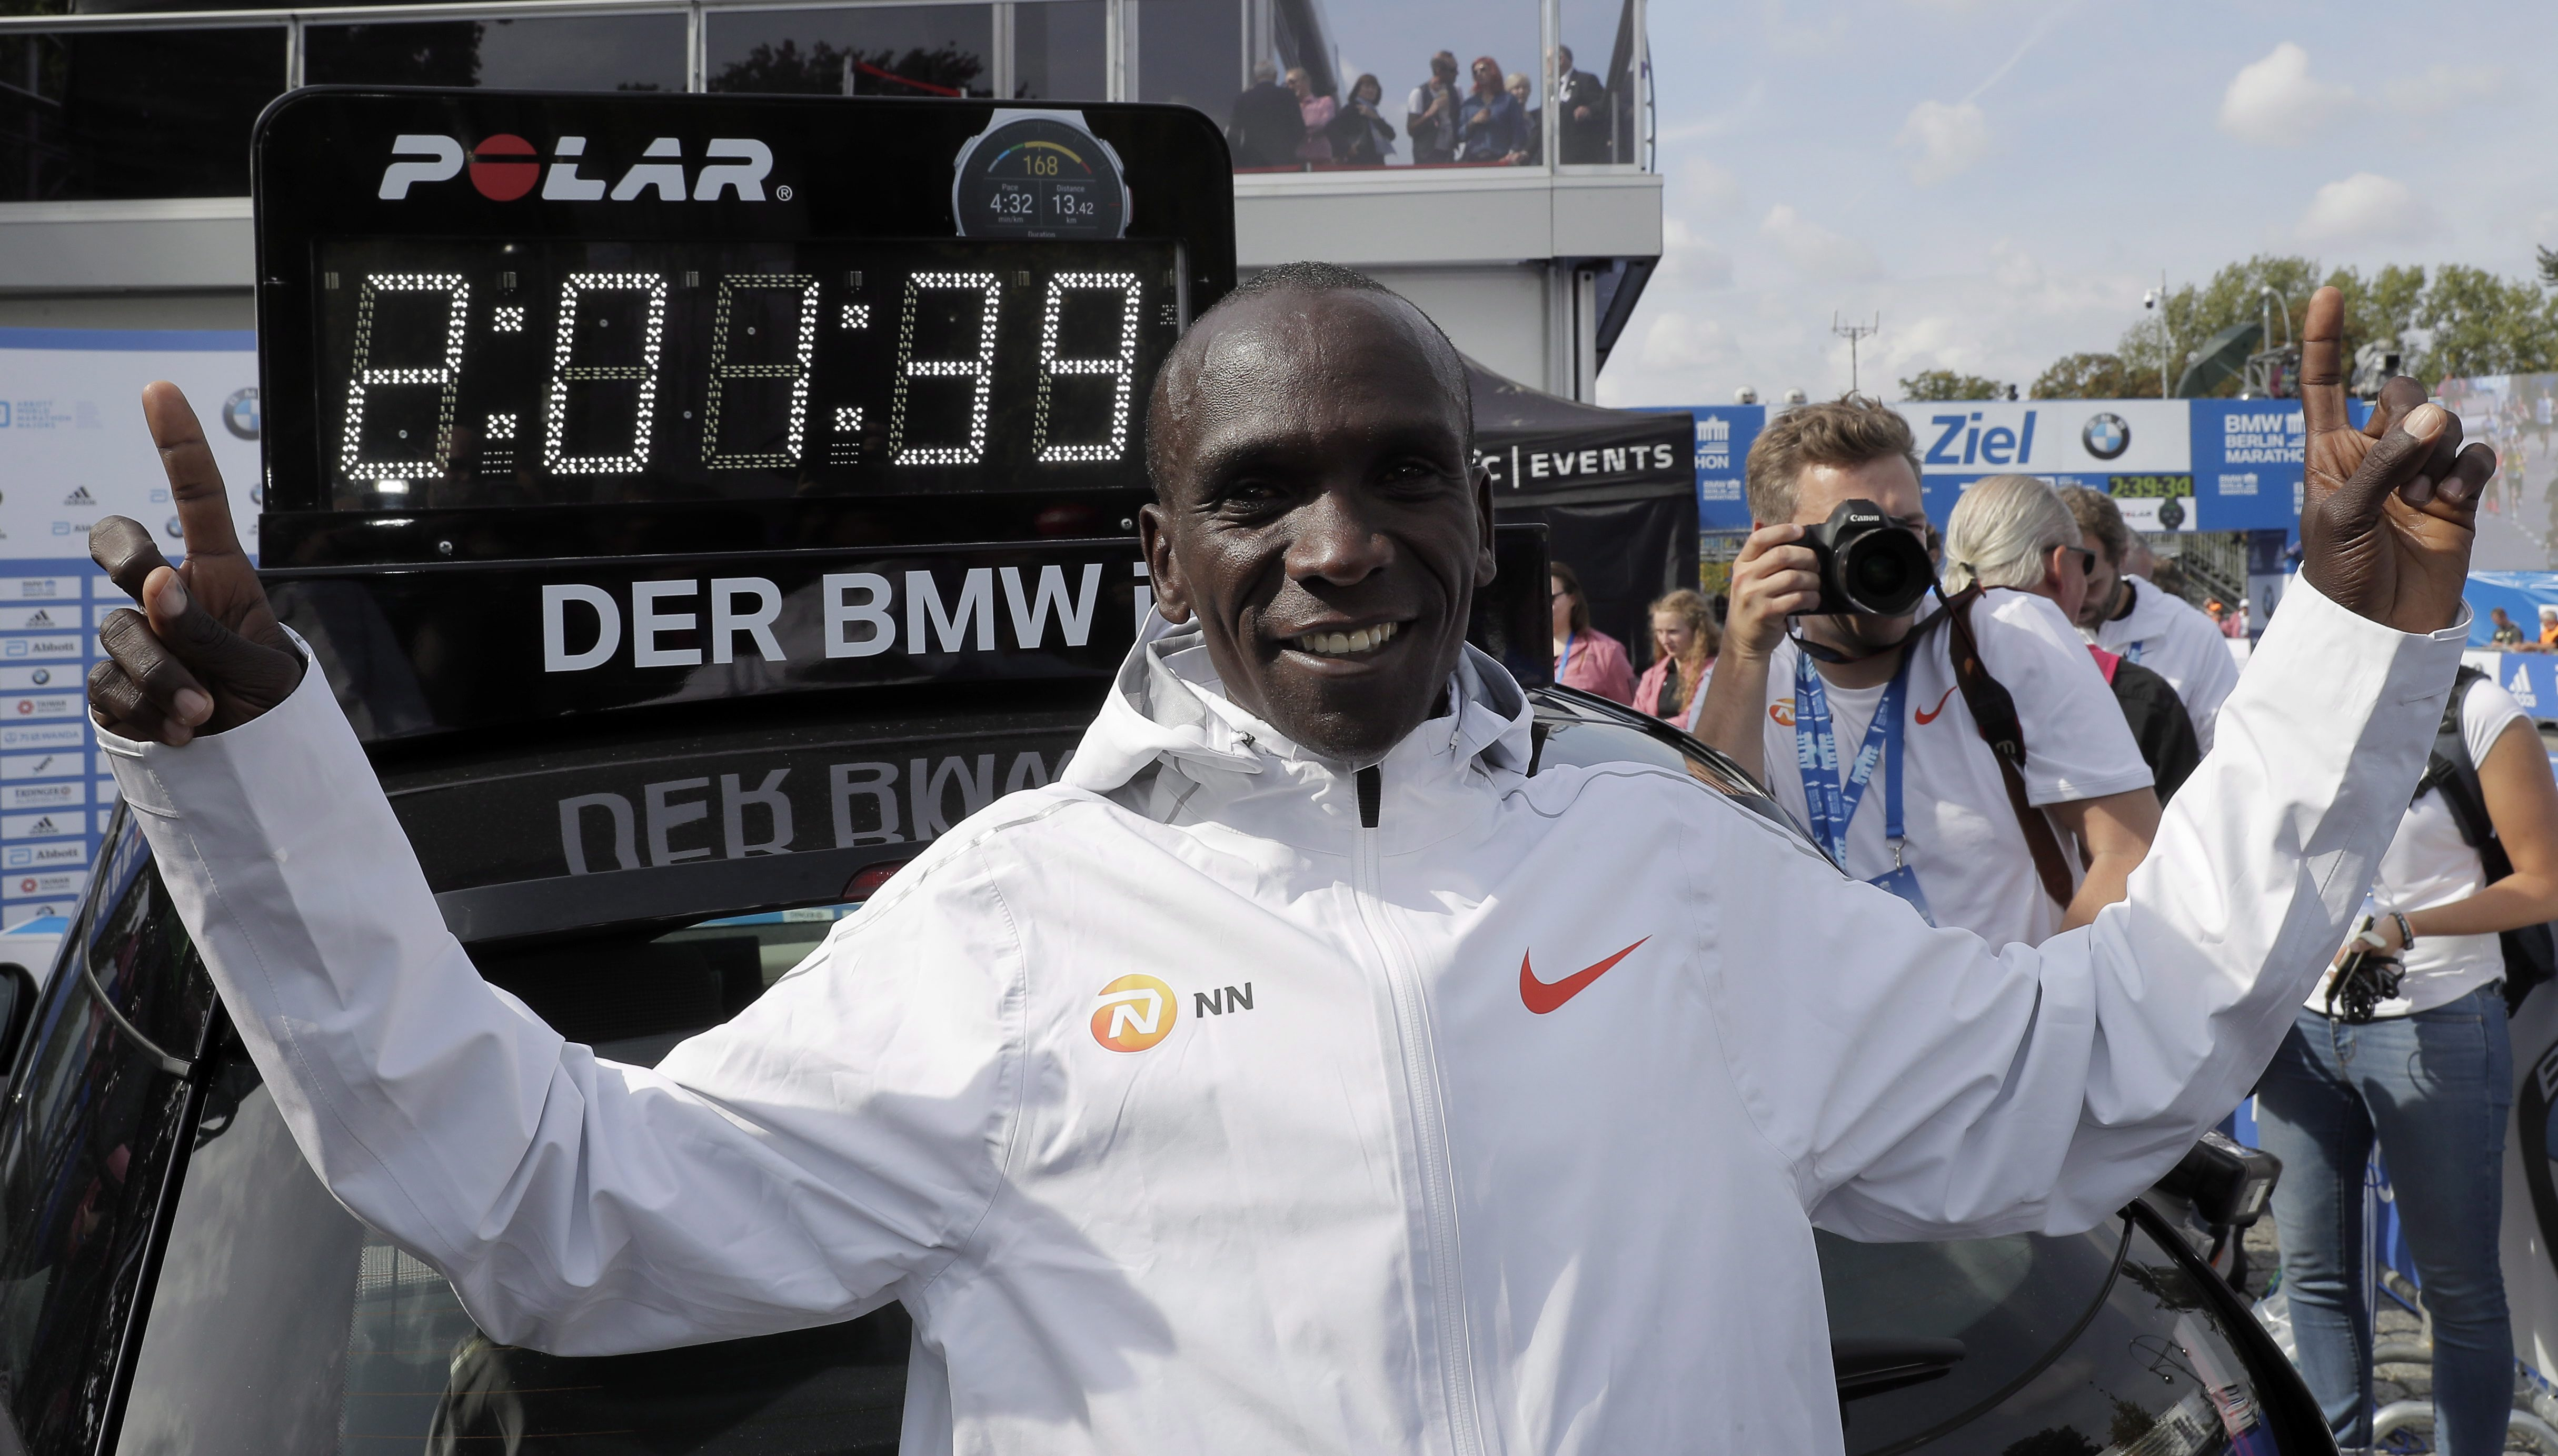 Eliud Kipchoge in front of the clock showing his world record time